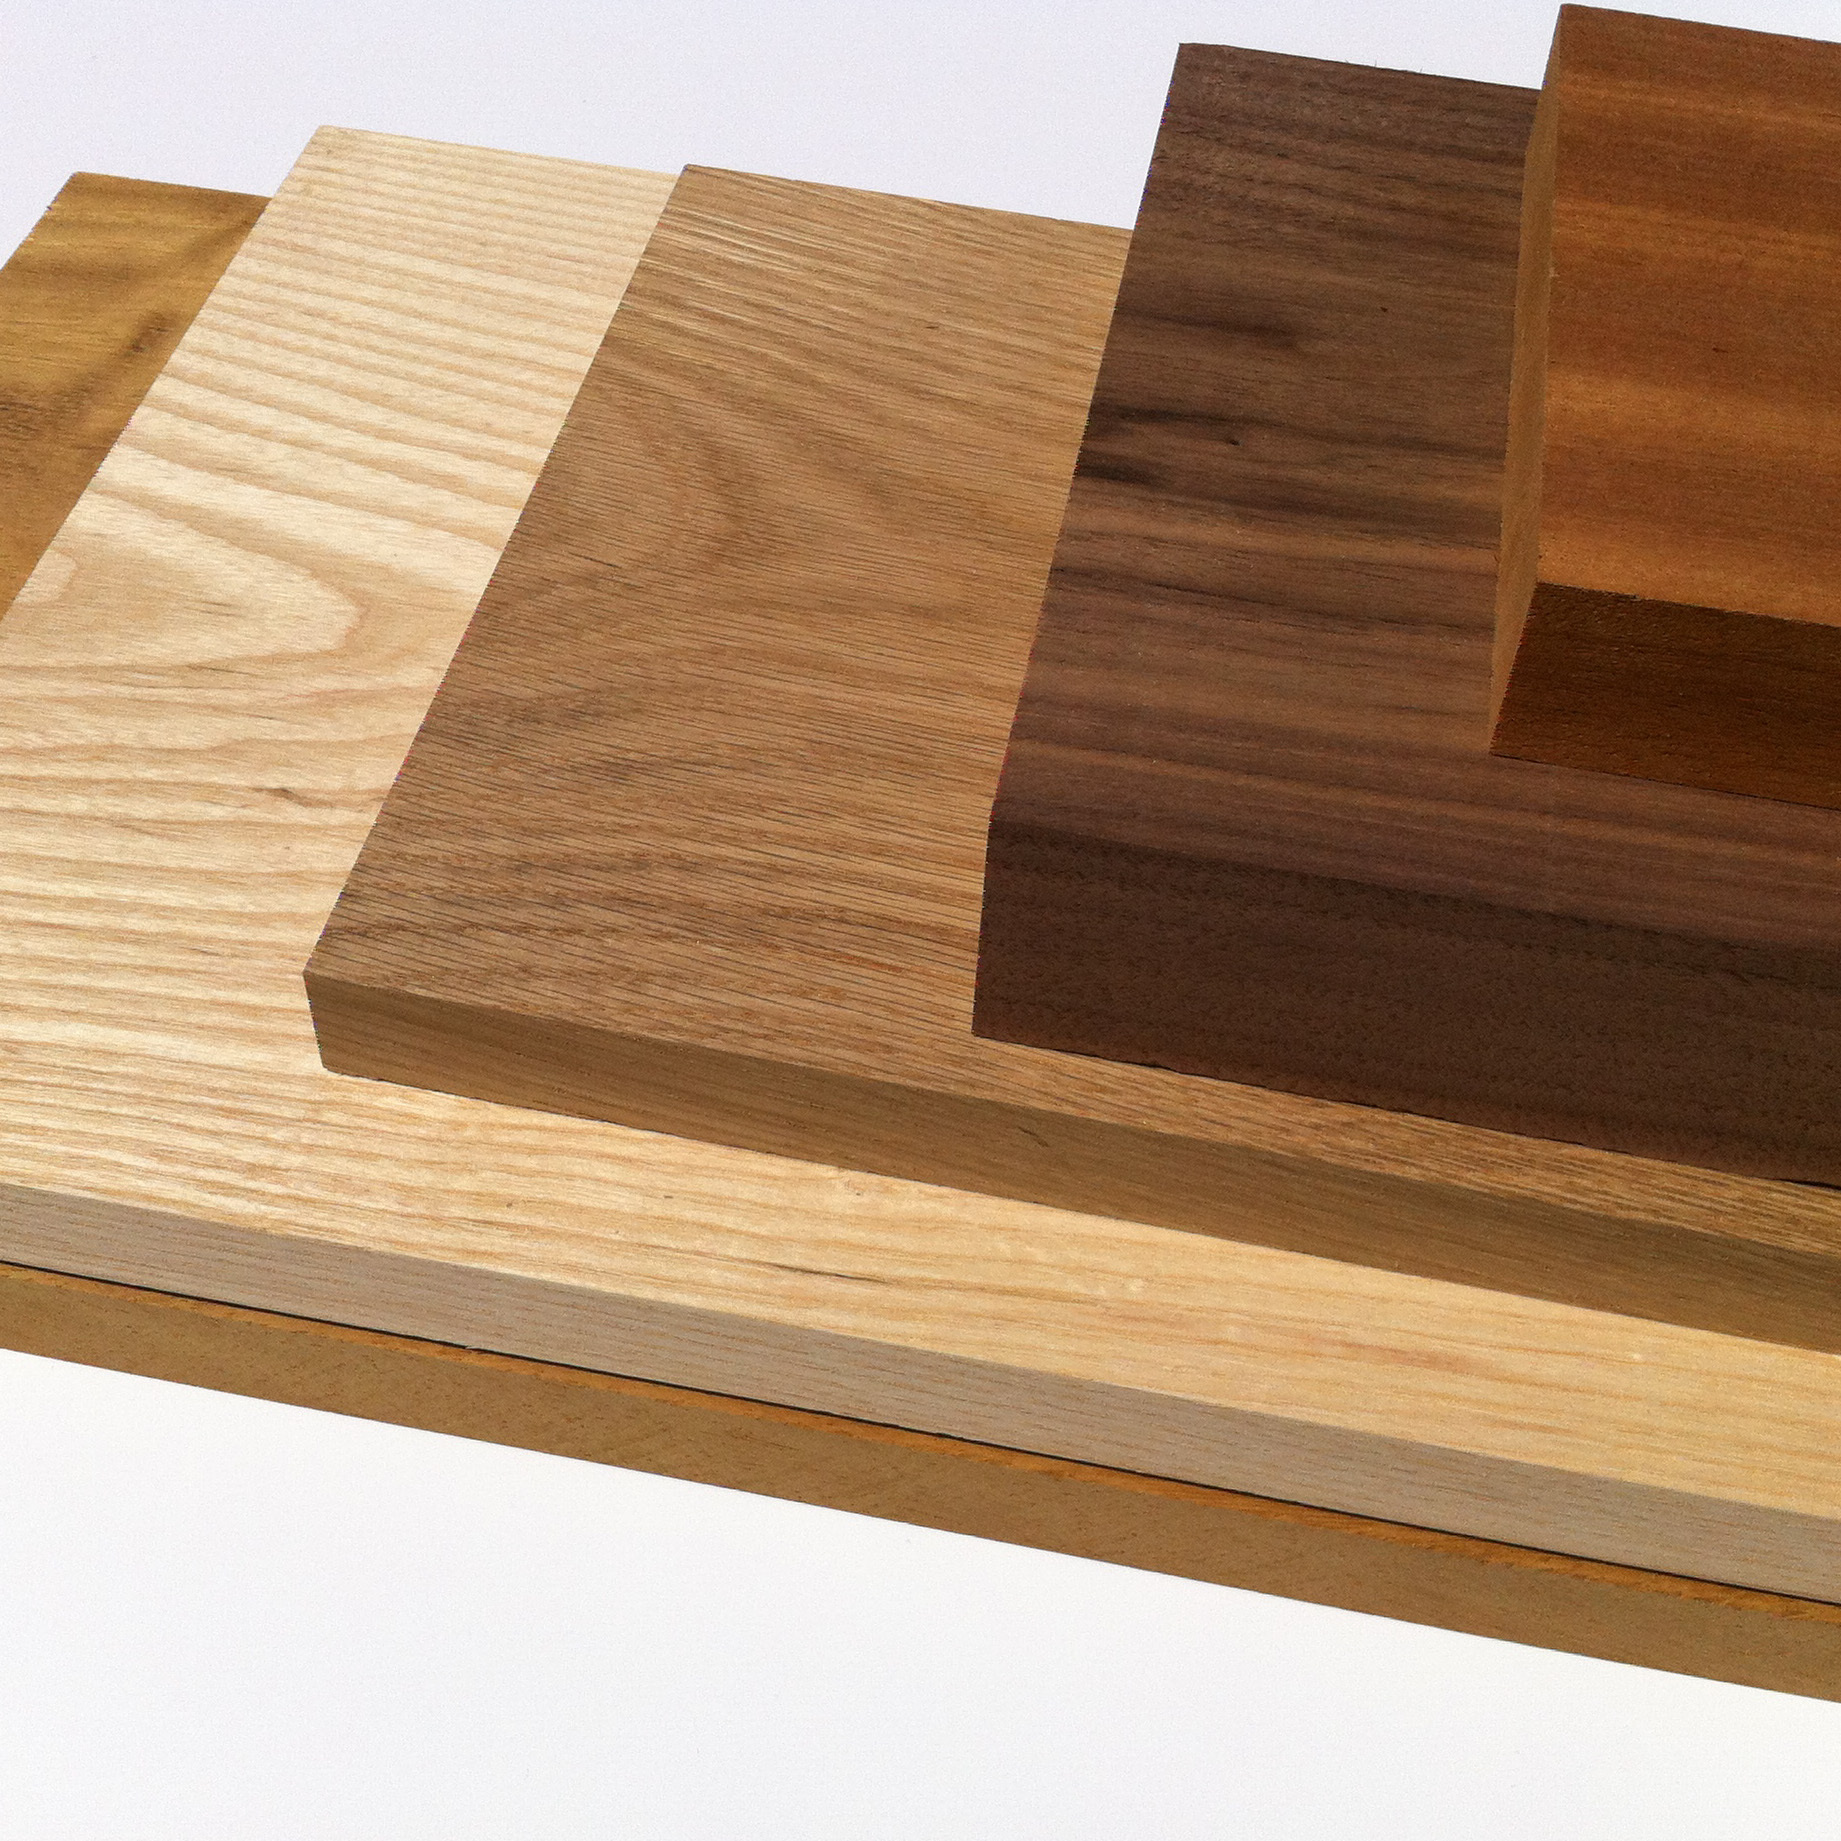 Gg Joinery Hardwood Suppliers